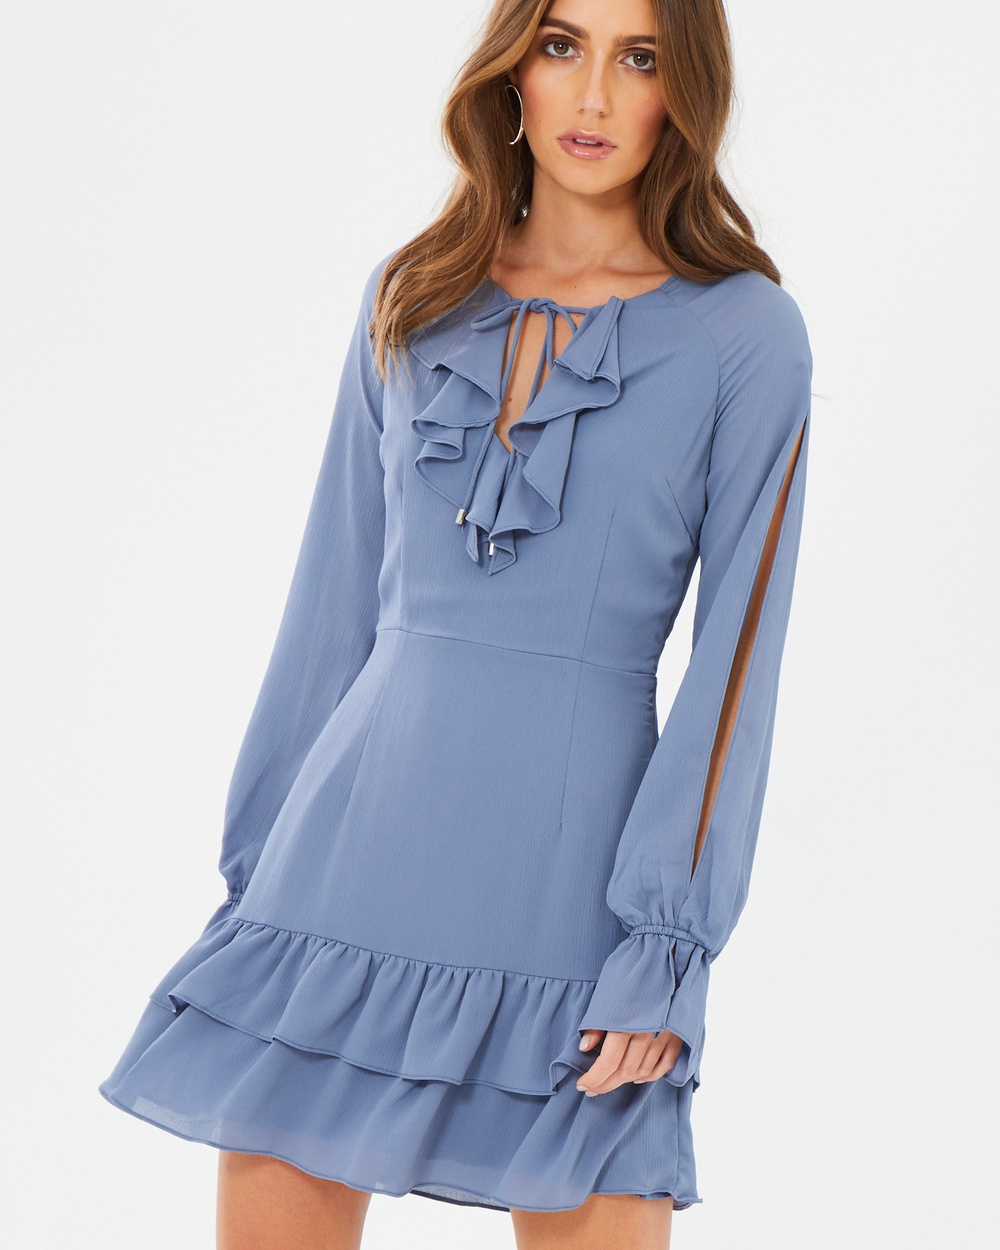 CHANCERY Harper Flounce Mini Dress Dresses Dusty Blue Harper Flounce Mini Dress